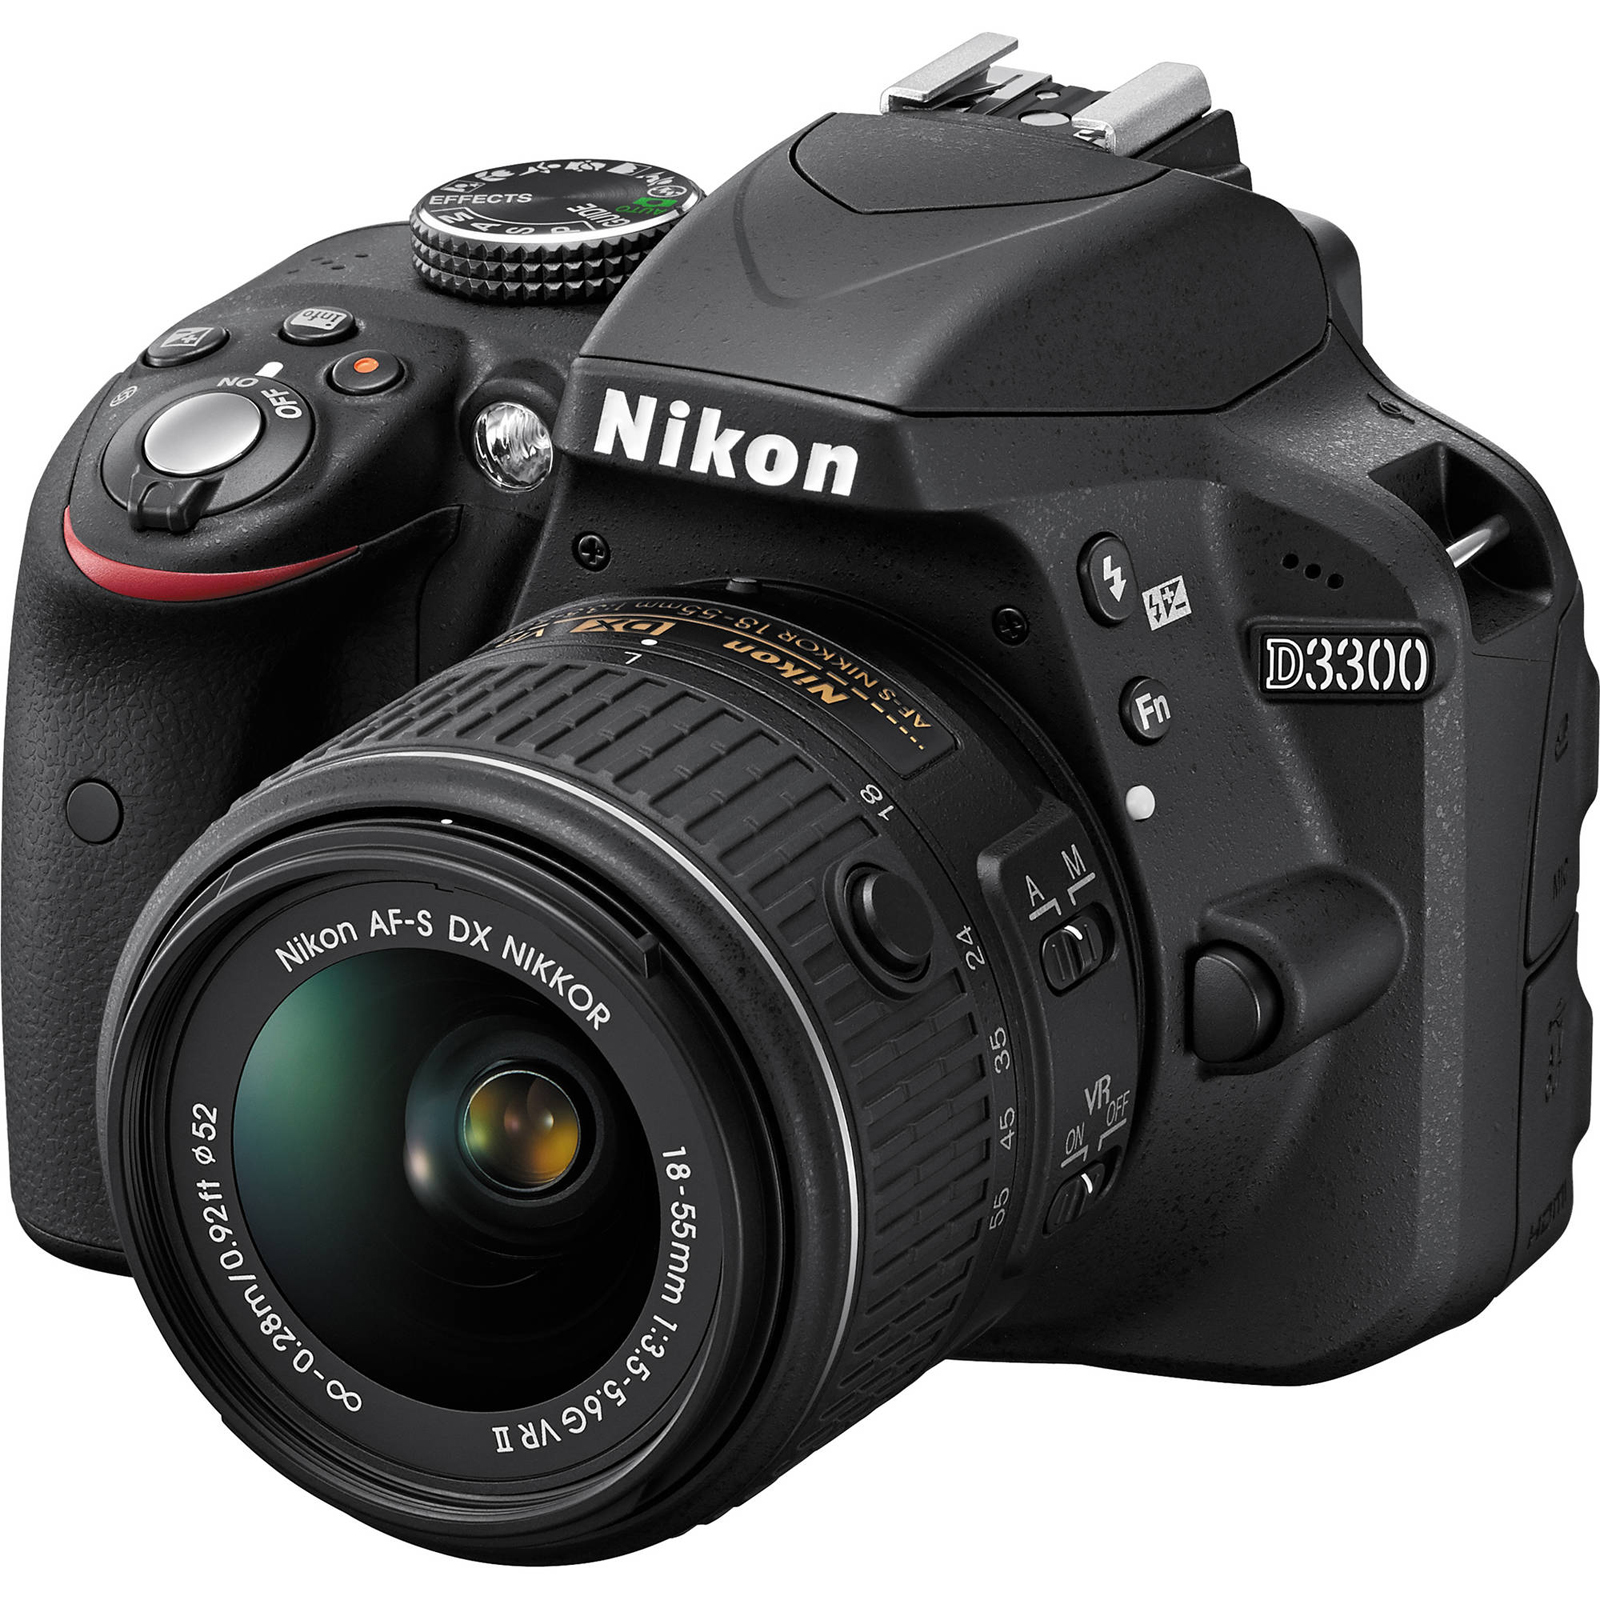 Nikon D3300 Digital SLR Camera & 18-55mm VR DX II AF-S Lens (Black) - Factory Refurbished includes Full 1 Year Warranty